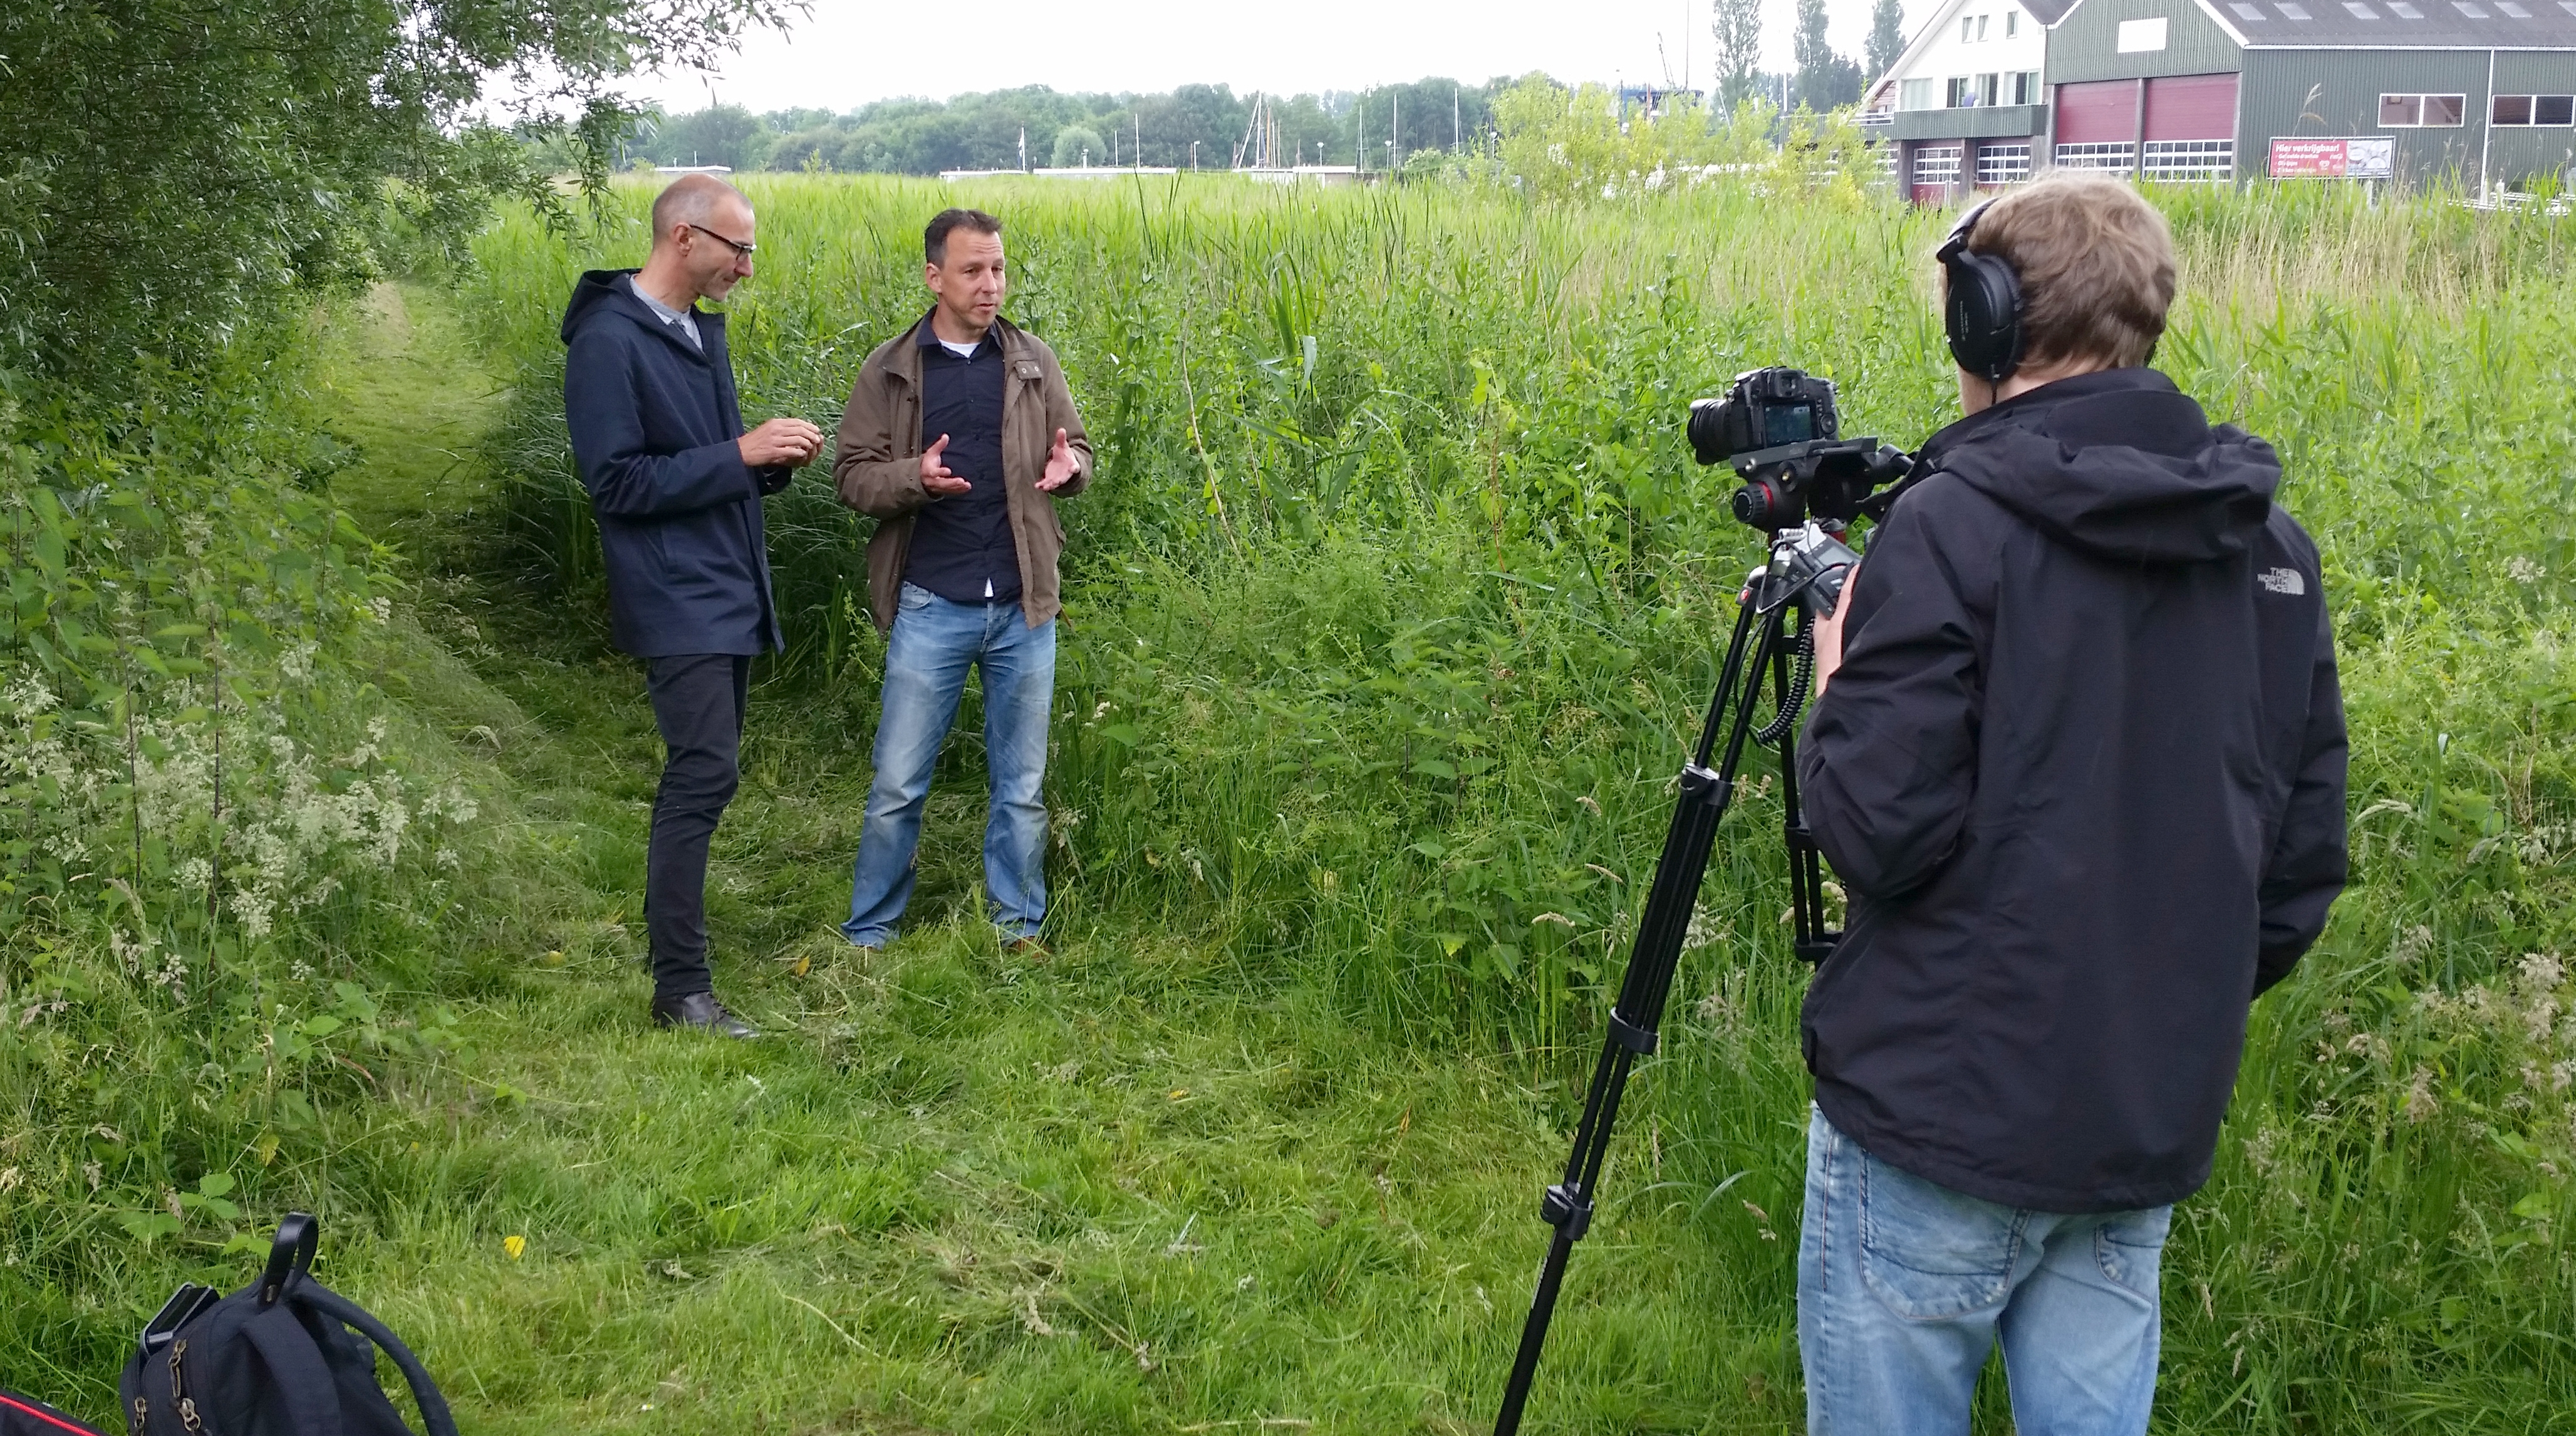 We shot part of our MOOC Evolution Today in the field - where biologists feel most at home!